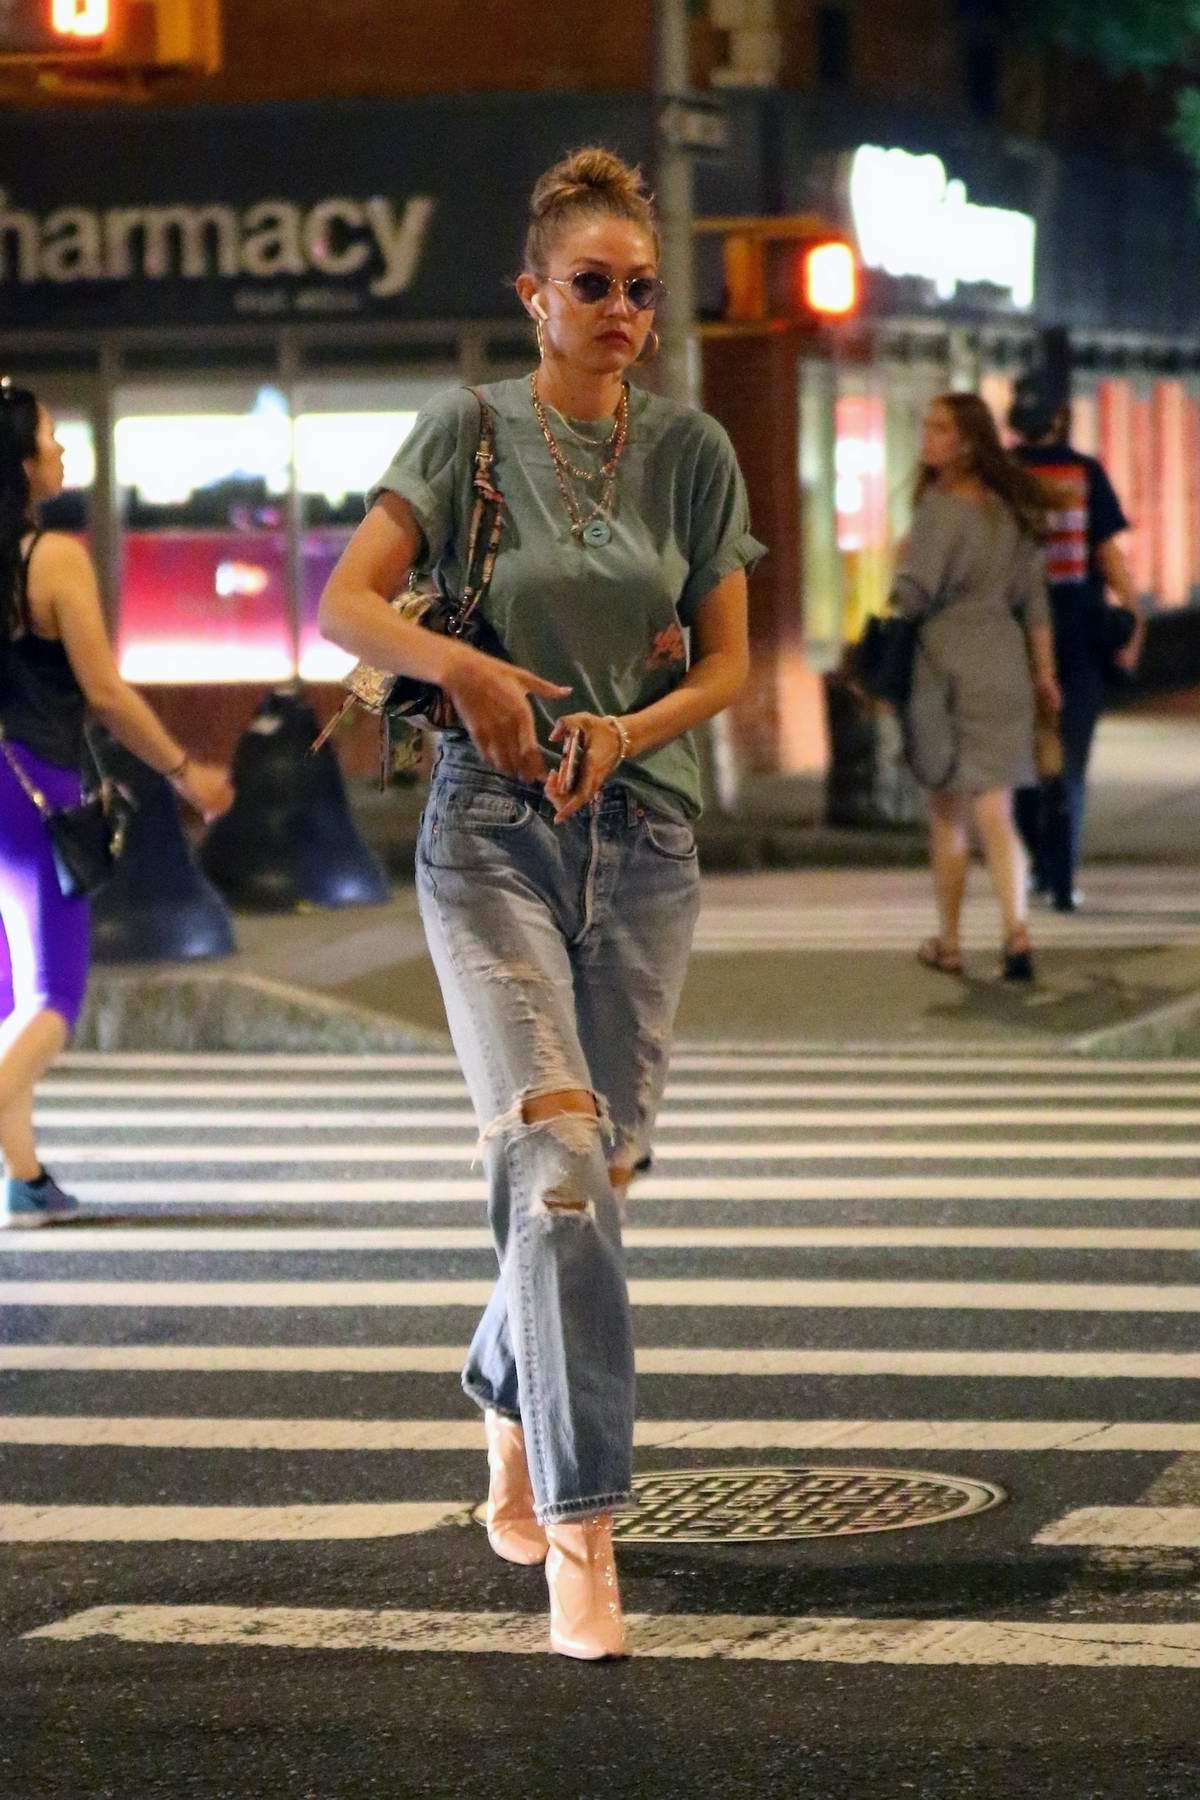 Gigi Hadid looks chic as she sports her sunglasses for a late night stroll through SoHo in New York City